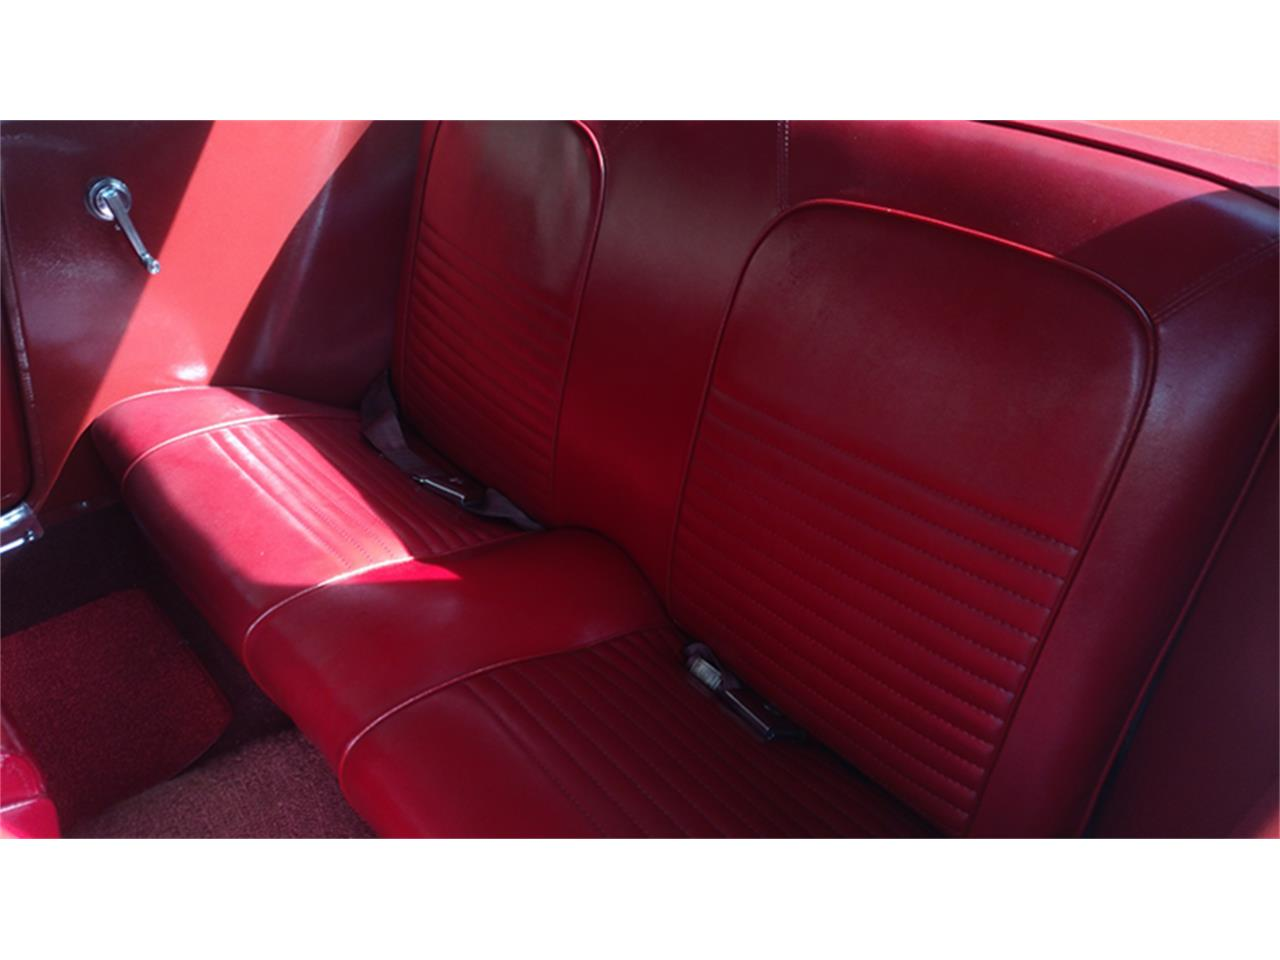 Large Picture of 1967 Ford Mustang located in Maryland - $15,900.00 Offered by Old Town Automobile - M763